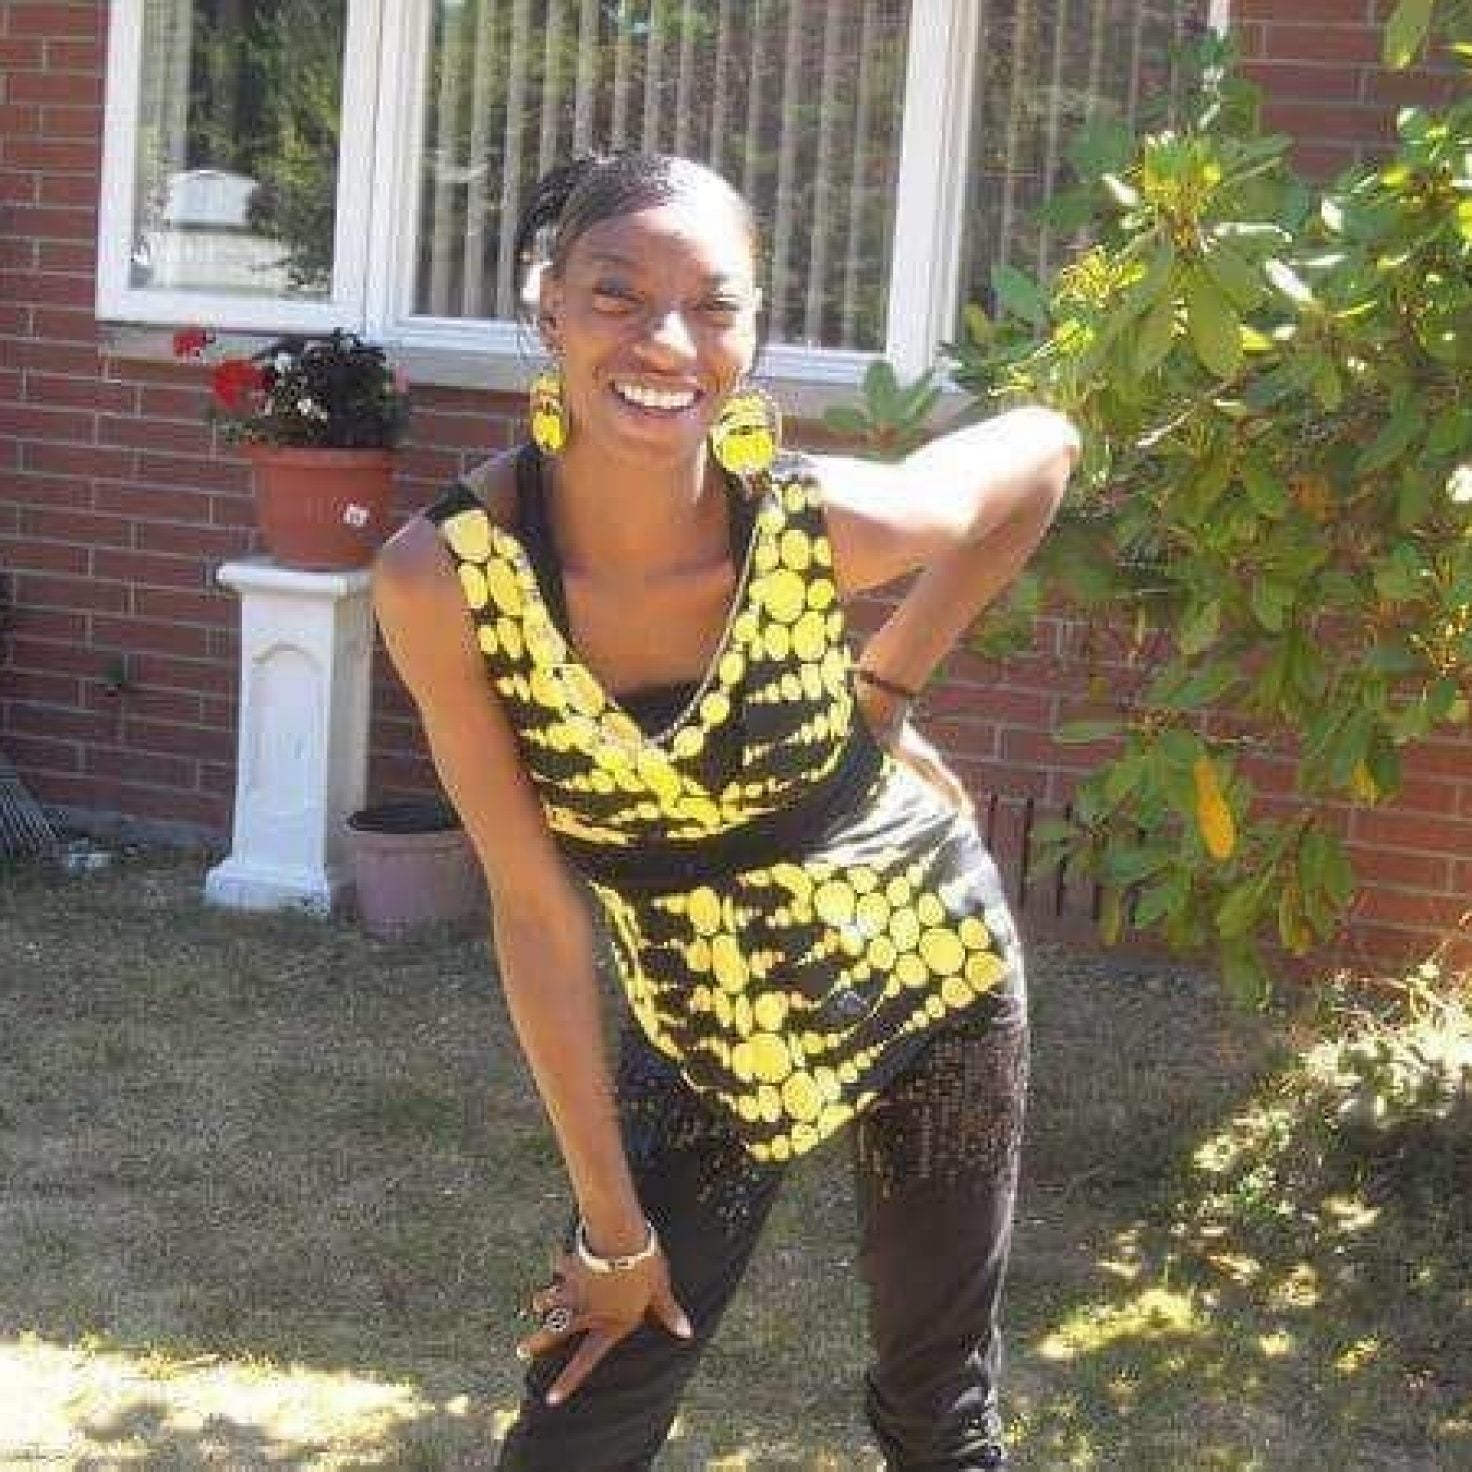 Police, Power, Policy, and Privilege vs. The People: We're All Charleena Lyles